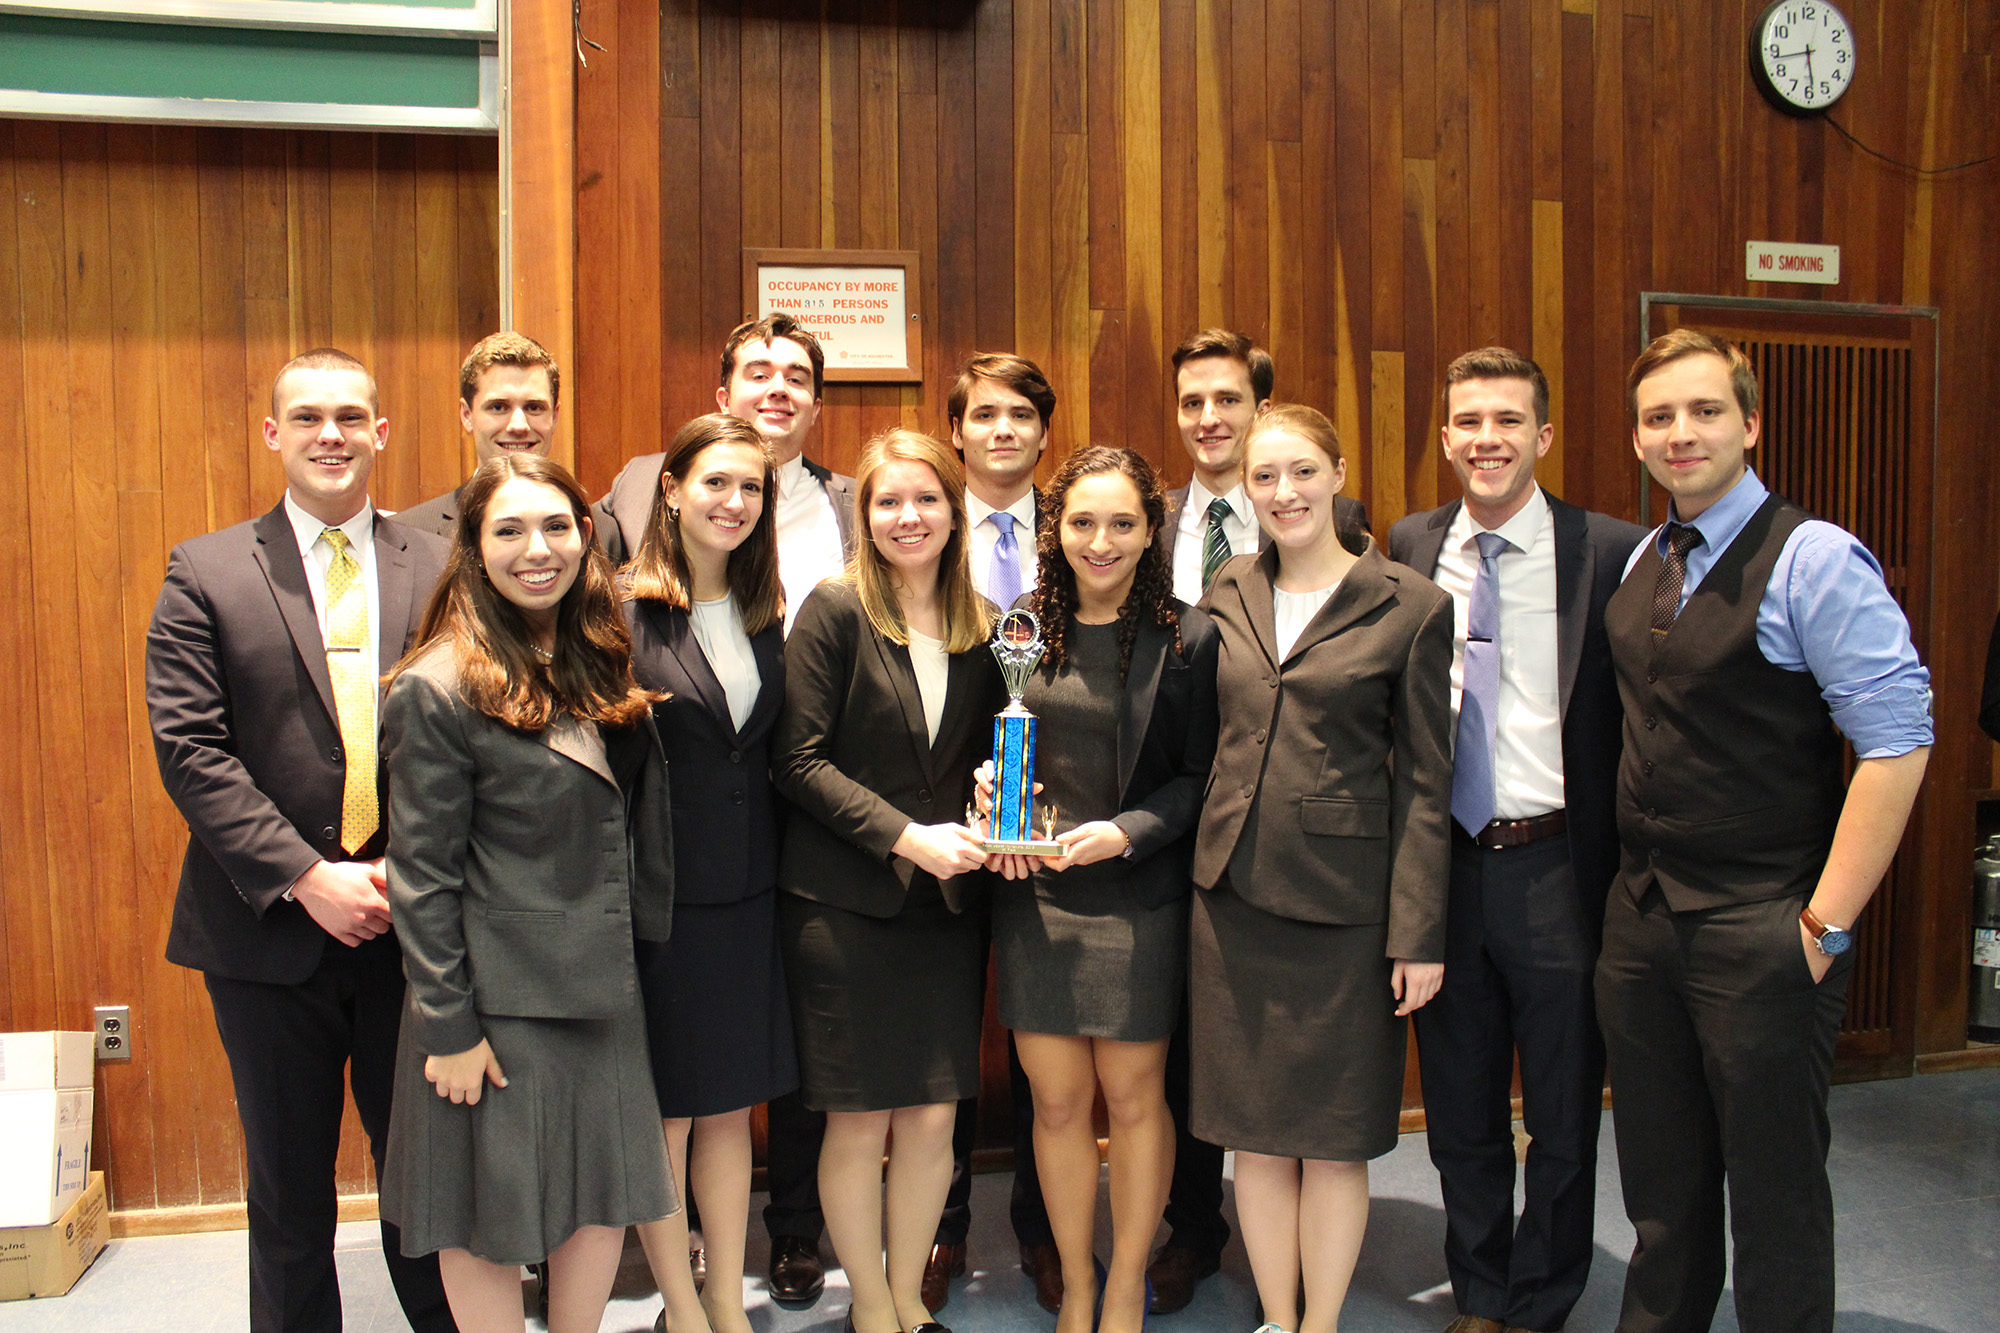 The victorious Mock Trial team at the University of Rochester.